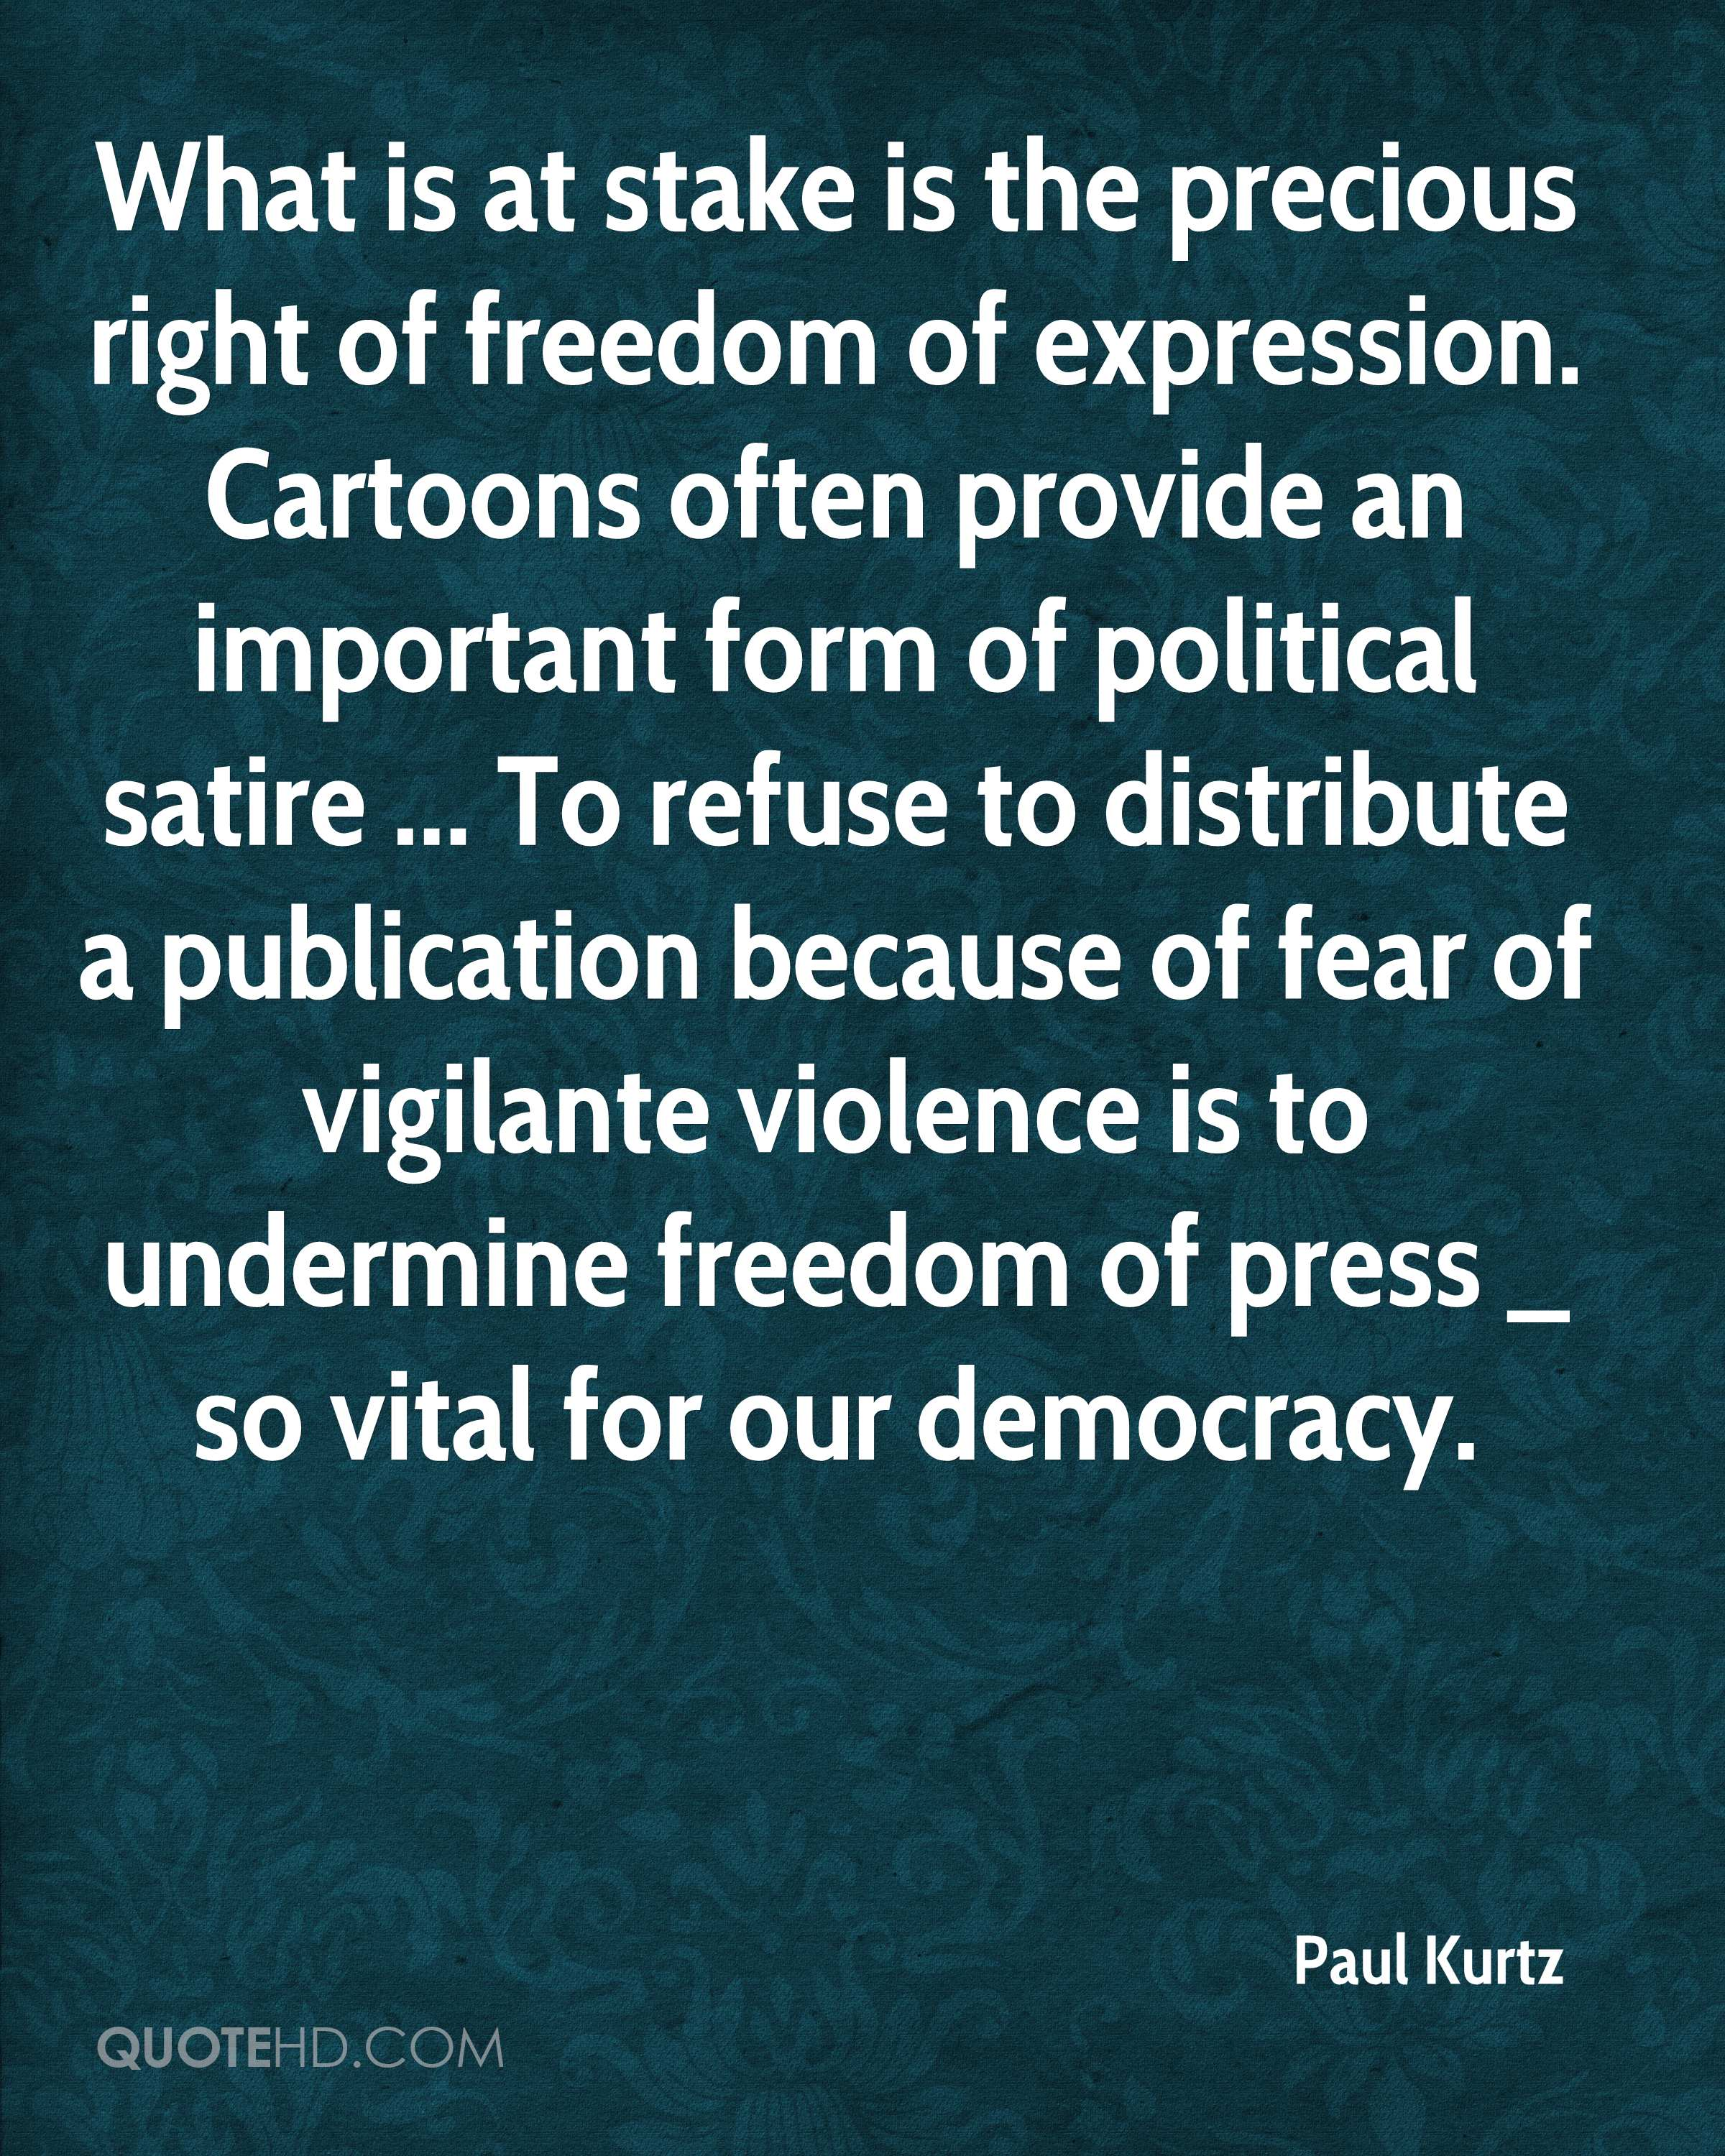 What is at stake is the precious right of freedom of expression. Cartoons often provide an important form of political satire ... To refuse to distribute a publication because of fear of vigilante violence is to undermine freedom of press _ so vital for our democracy.